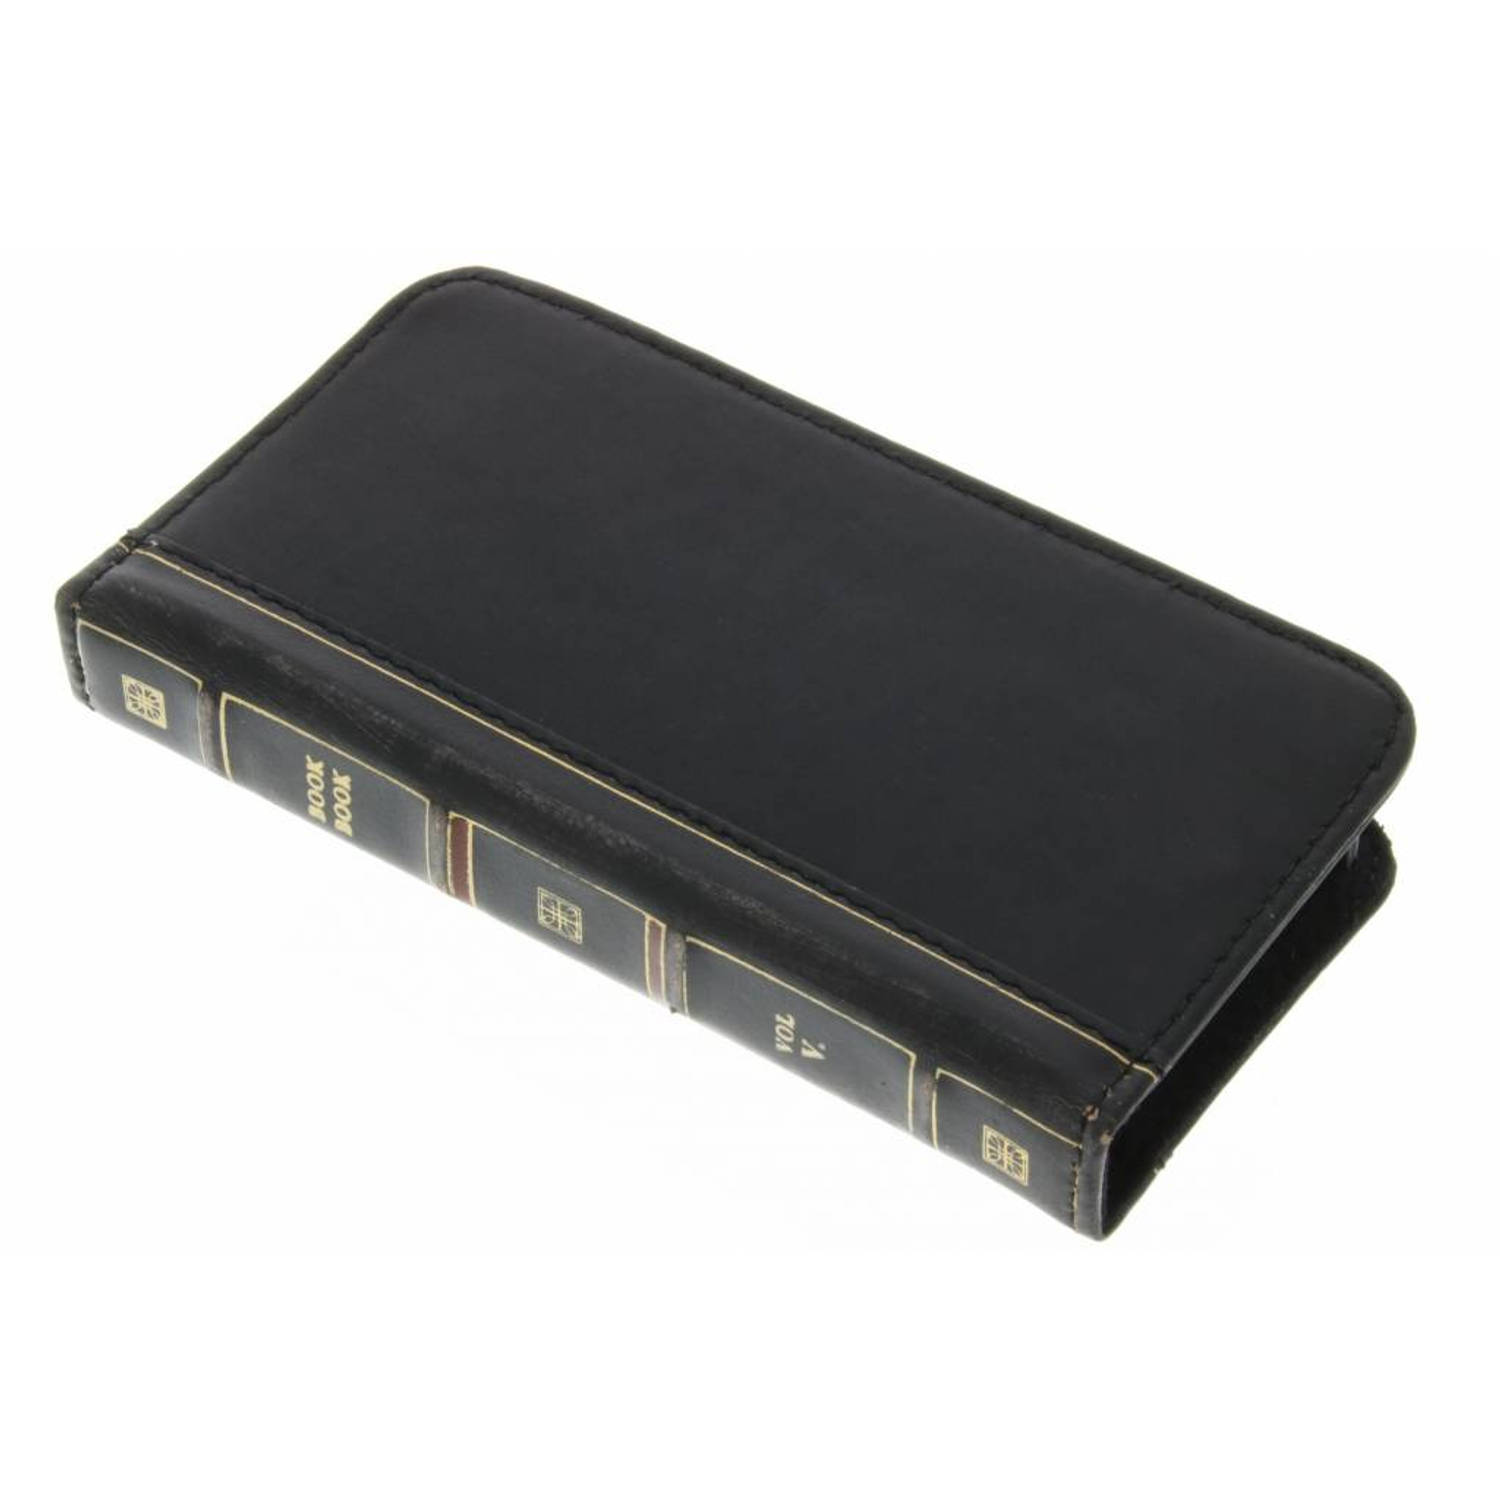 Zwarte BookBook Case voor de iPhone 5 / 5s / SE